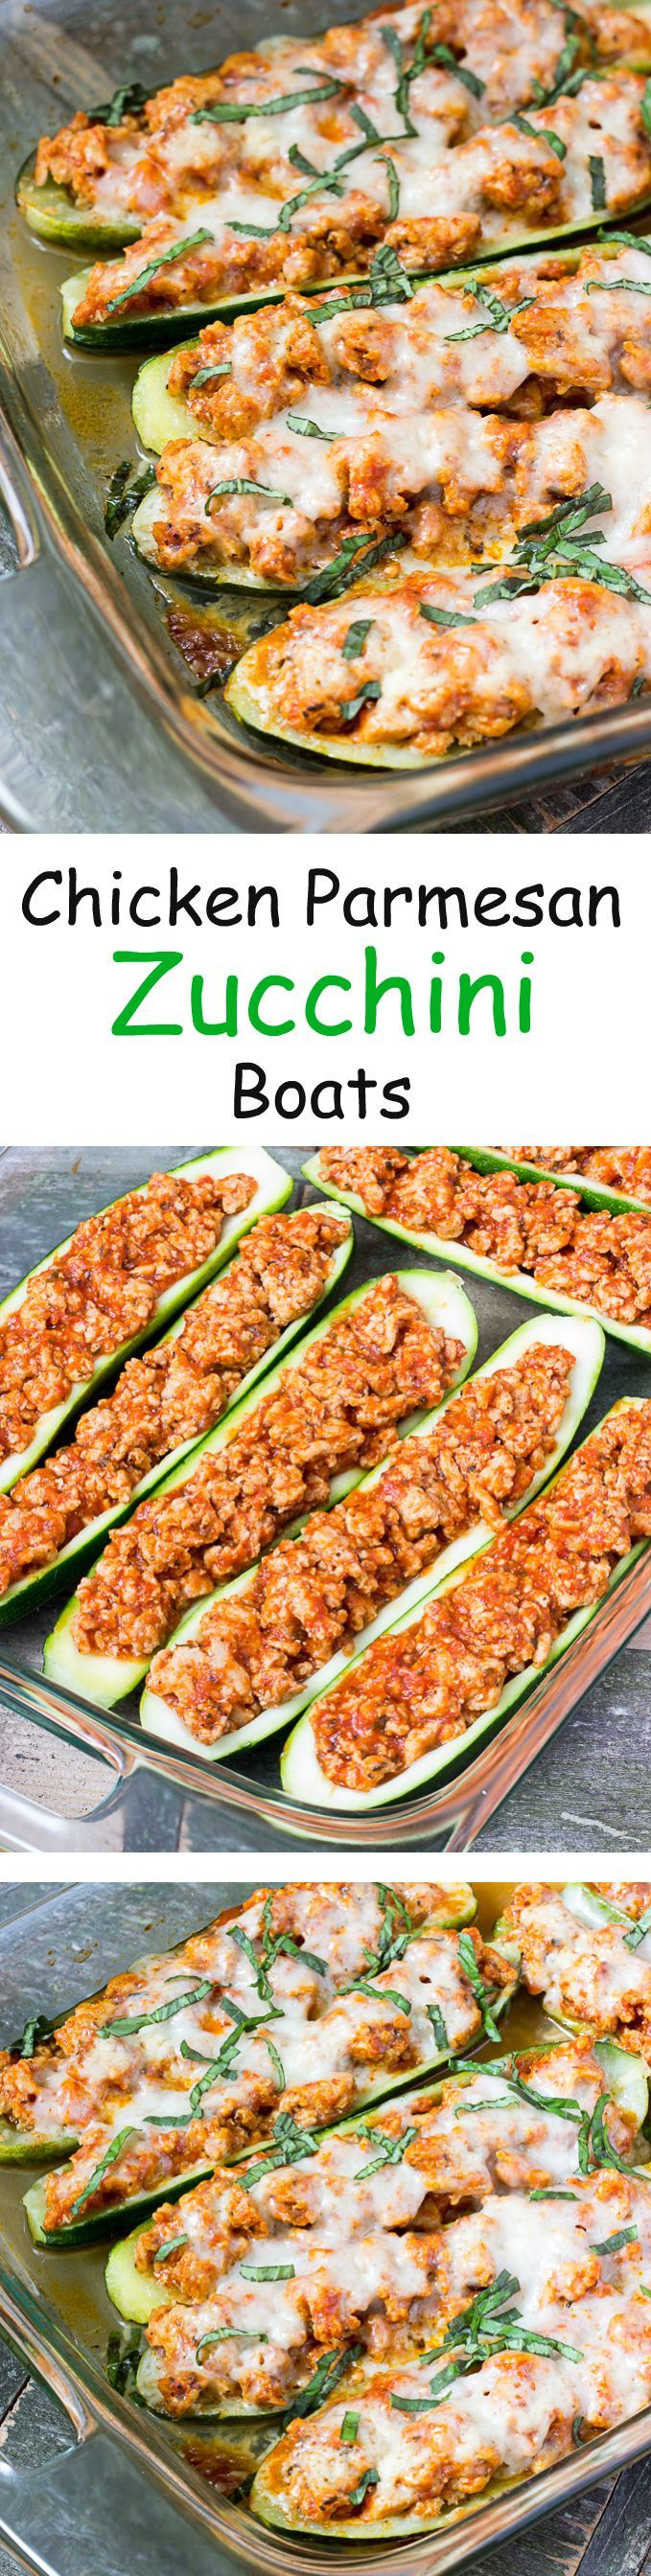 Chicken Parmesan Zucchini Boats - stuffed zucchini filled with chicken, pasta sauce, mozzarella, and parmesan cheese